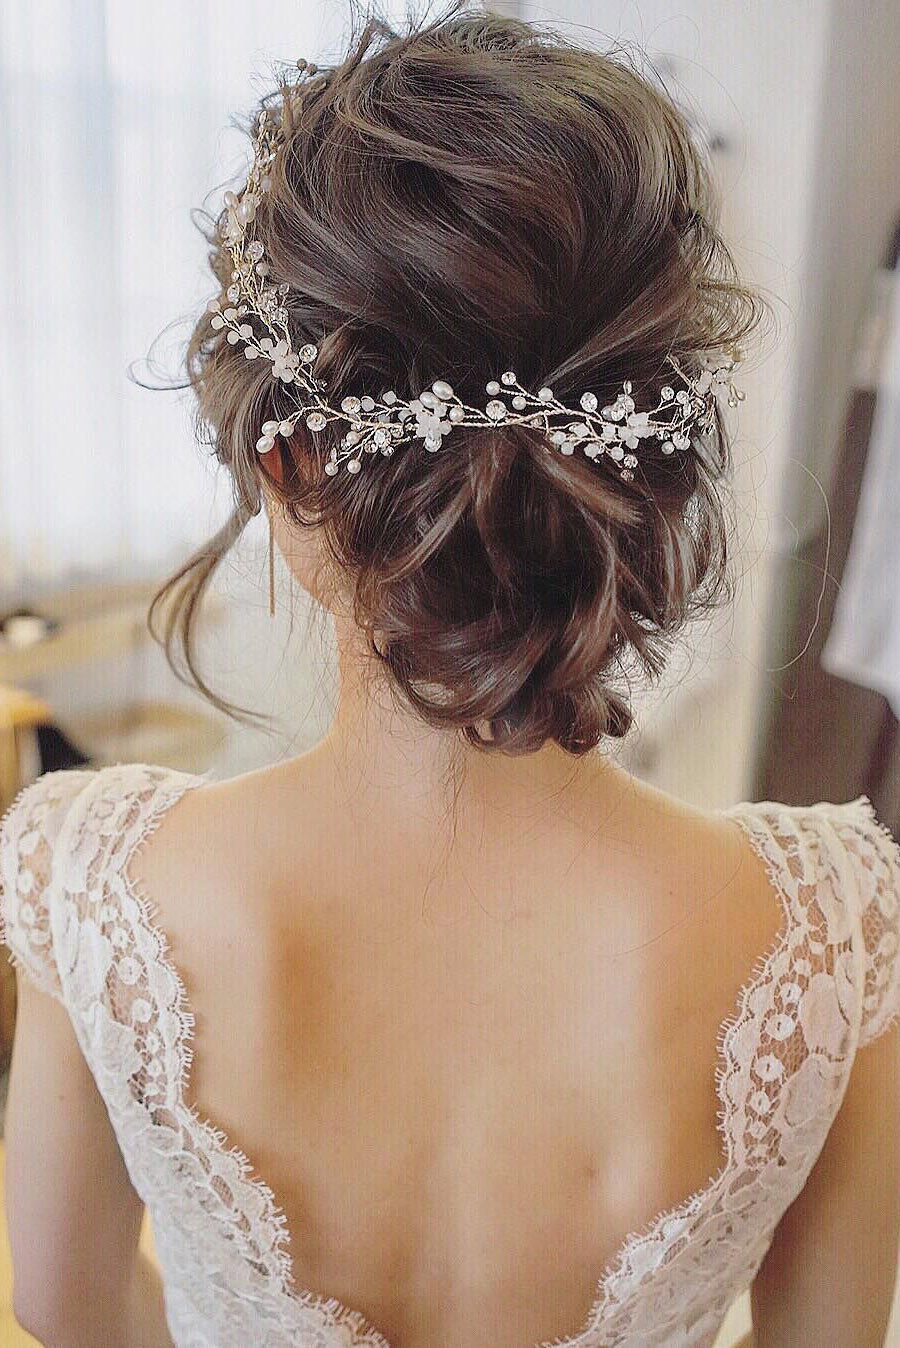 Wedding Hairstyles Brides  25 Chic Updo Wedding Hairstyles for All Brides